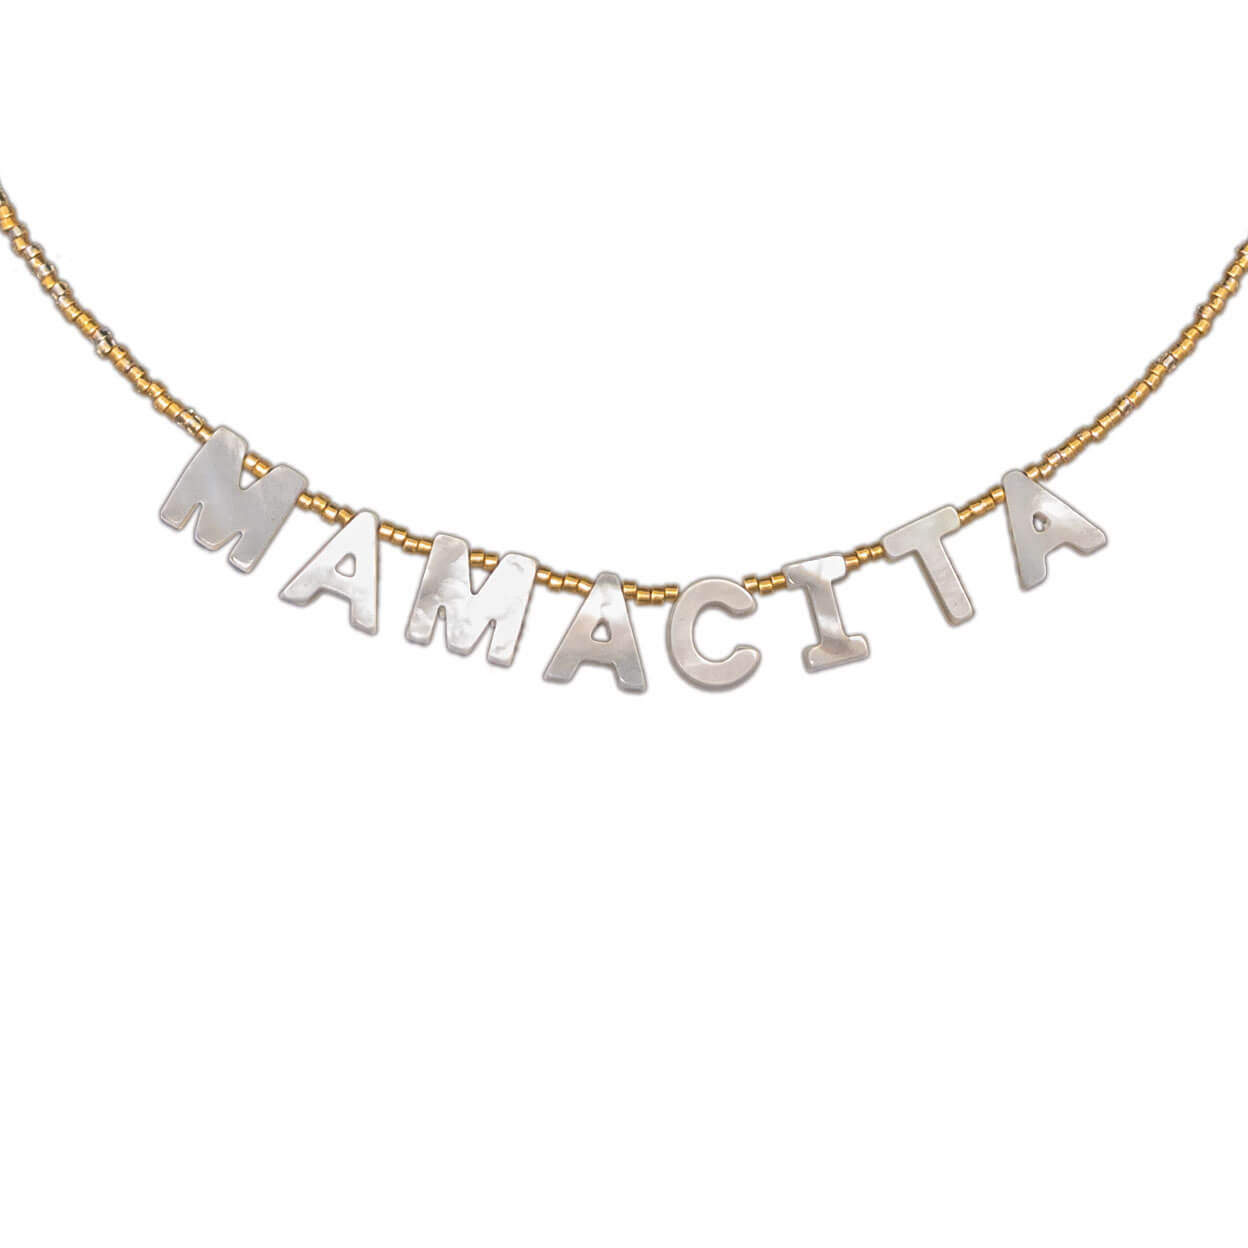 "tropical sty necklace that reads ""mamacita"" in mother of pearl letters on seed bead strand"